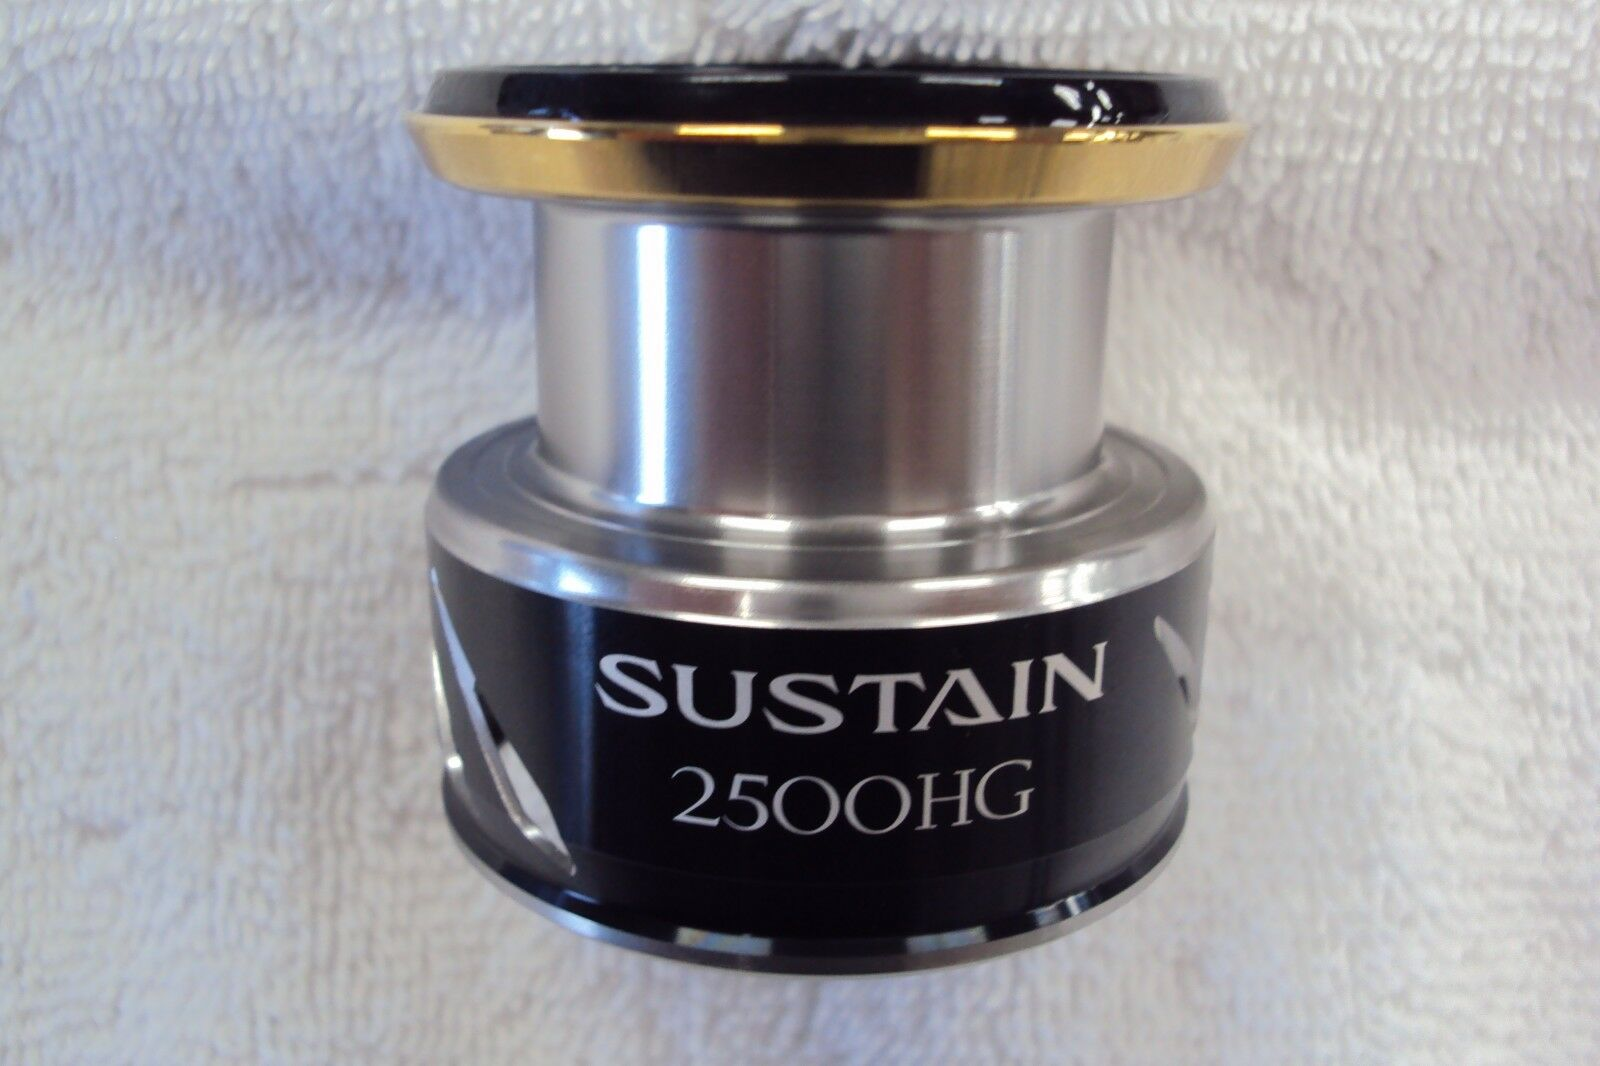 Shimano Sustain FI Spinning Reel Spare Spool Shipping New for 2017, Free Shipping Spool b0c467